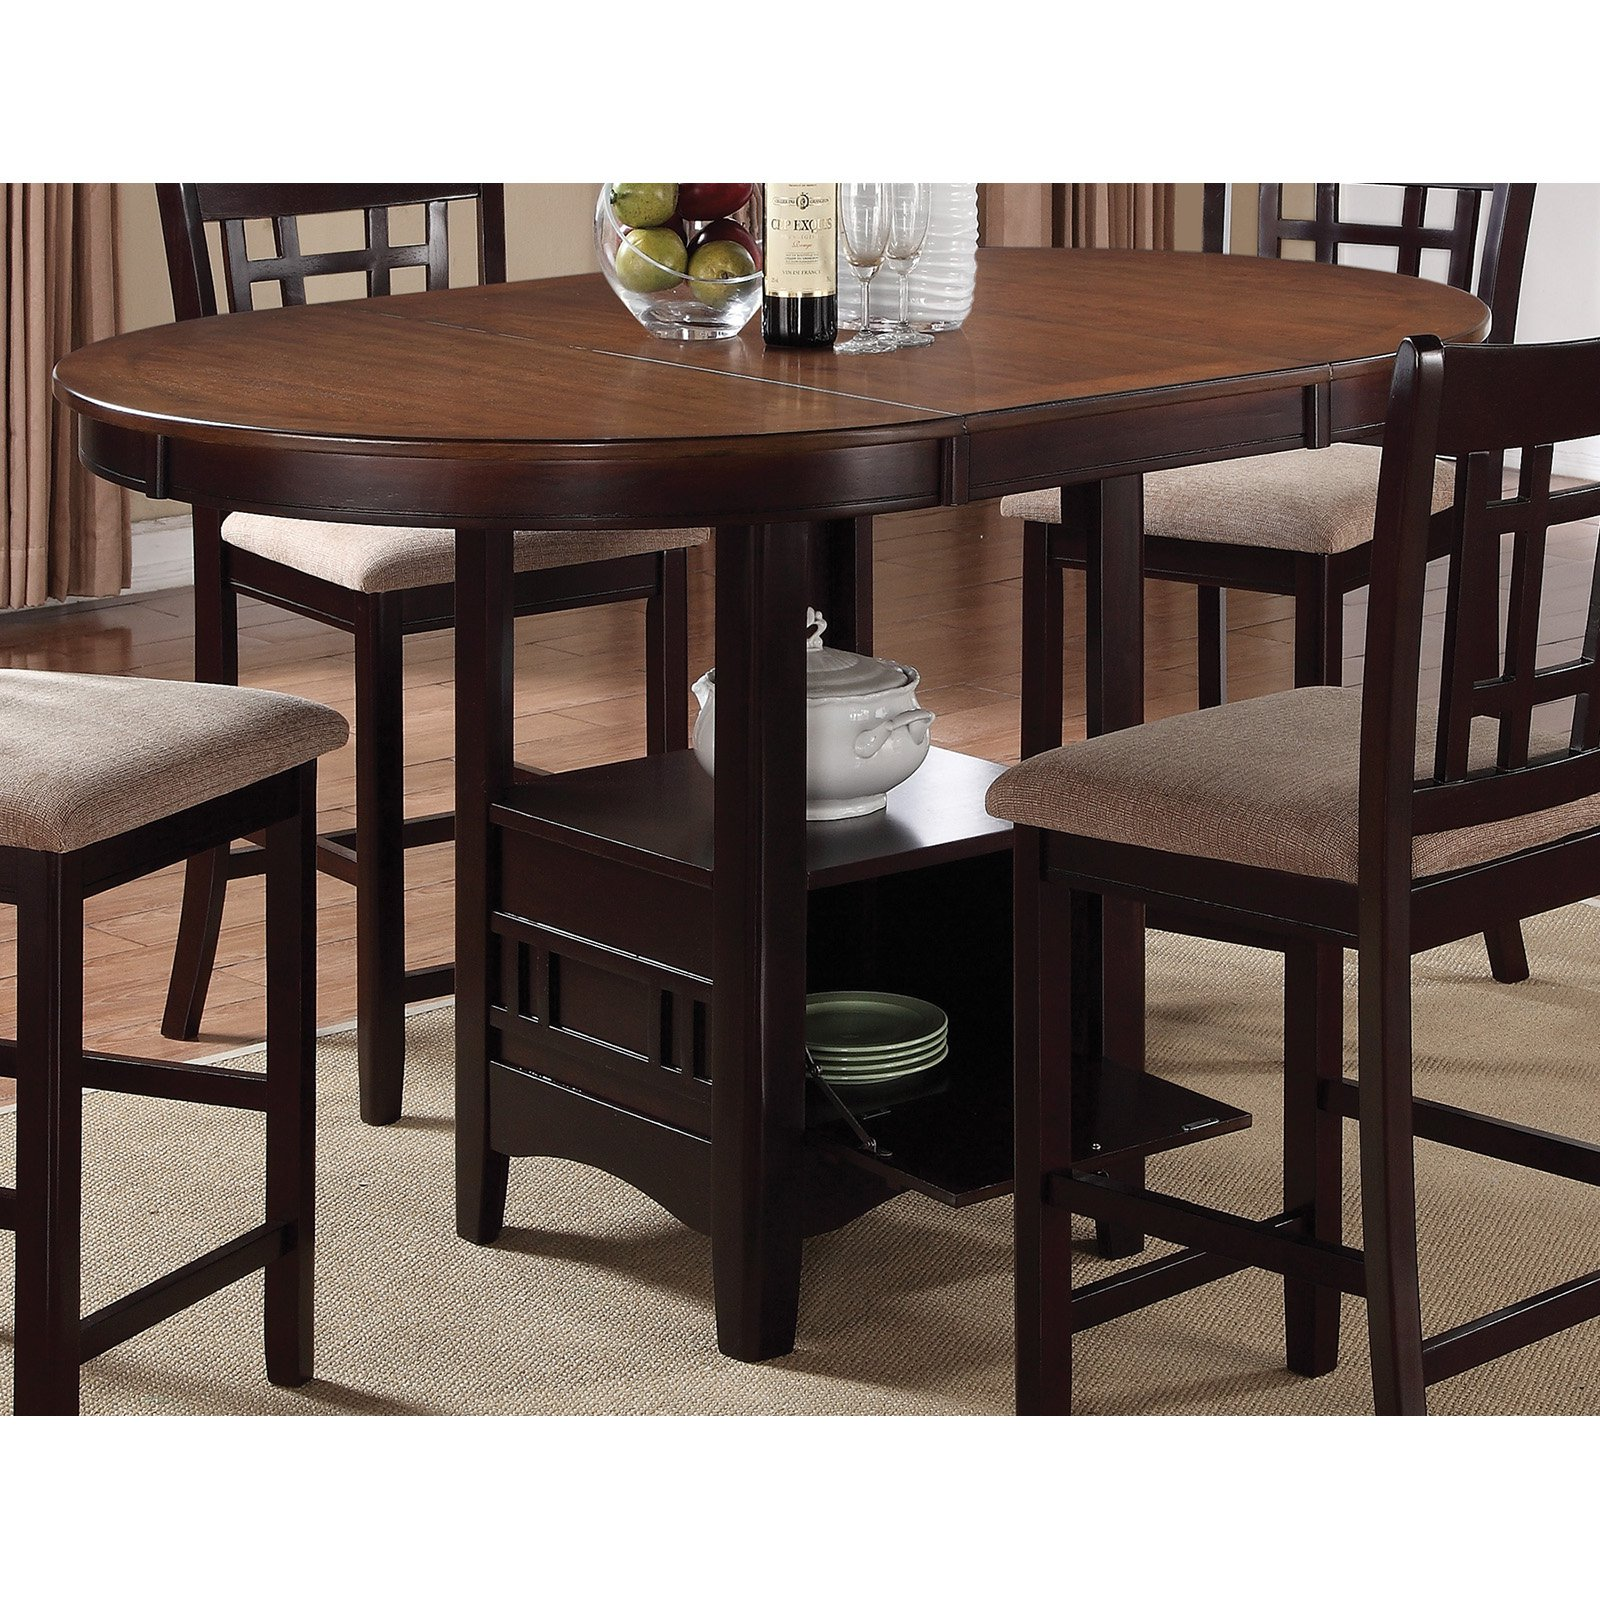 Coaster Company Lavon Counter Height Dining Table, Multiple Finishes by Coaster Company